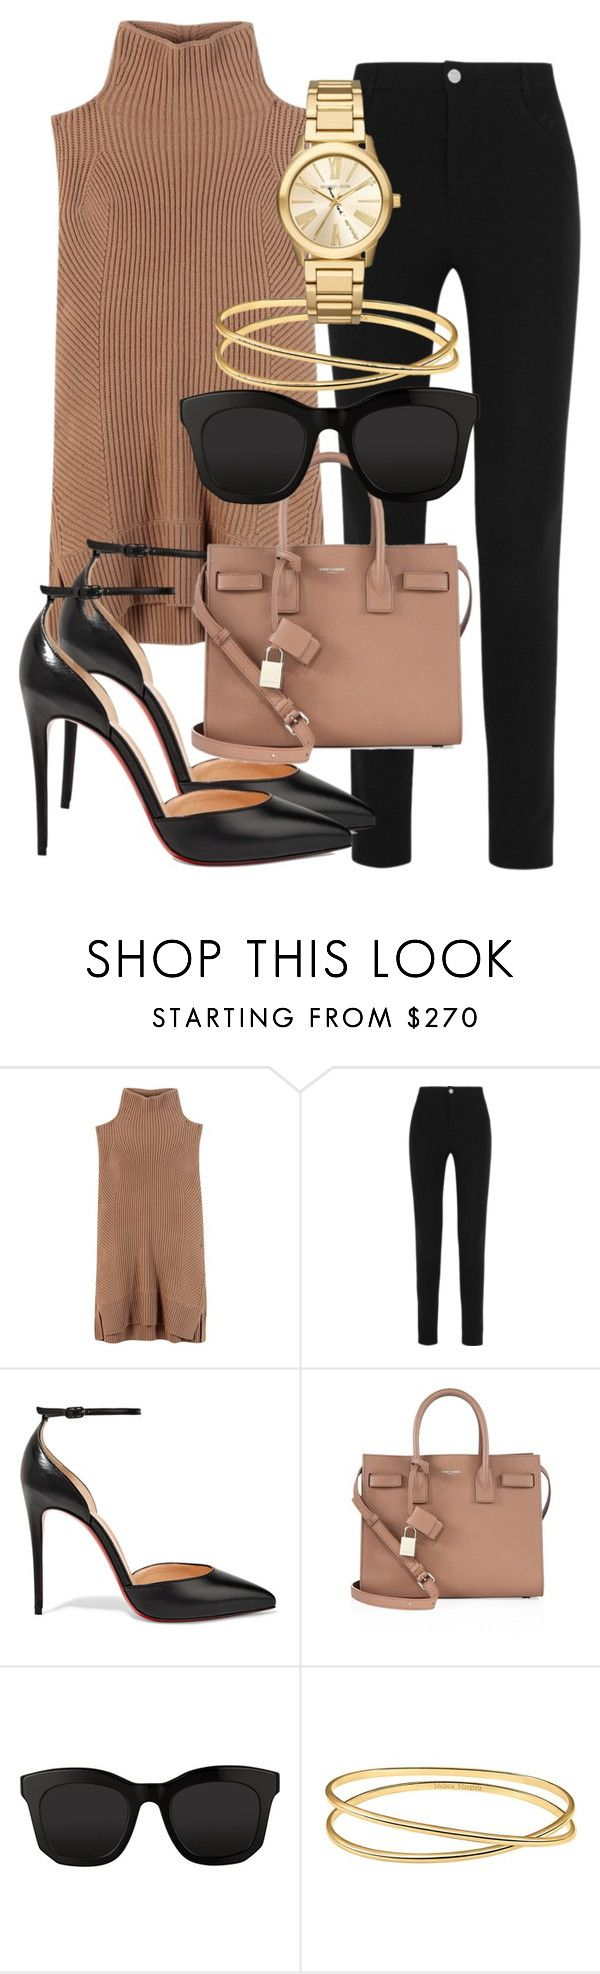 """""""Untitled #2025"""" by mariandradde ❤ liked on Polyvore featuring Vince, Givenchy, Christian Louboutin, Yves Saint Laurent, STELLA McCARTNEY, Maison Margiela and Michael Kors"""